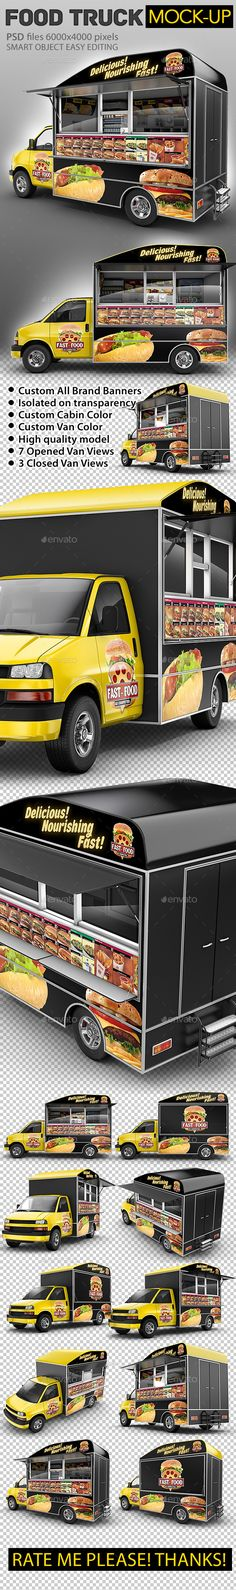 Food Truck Mock-Up. Van eatery mockup. - Vehicle Wraps Print